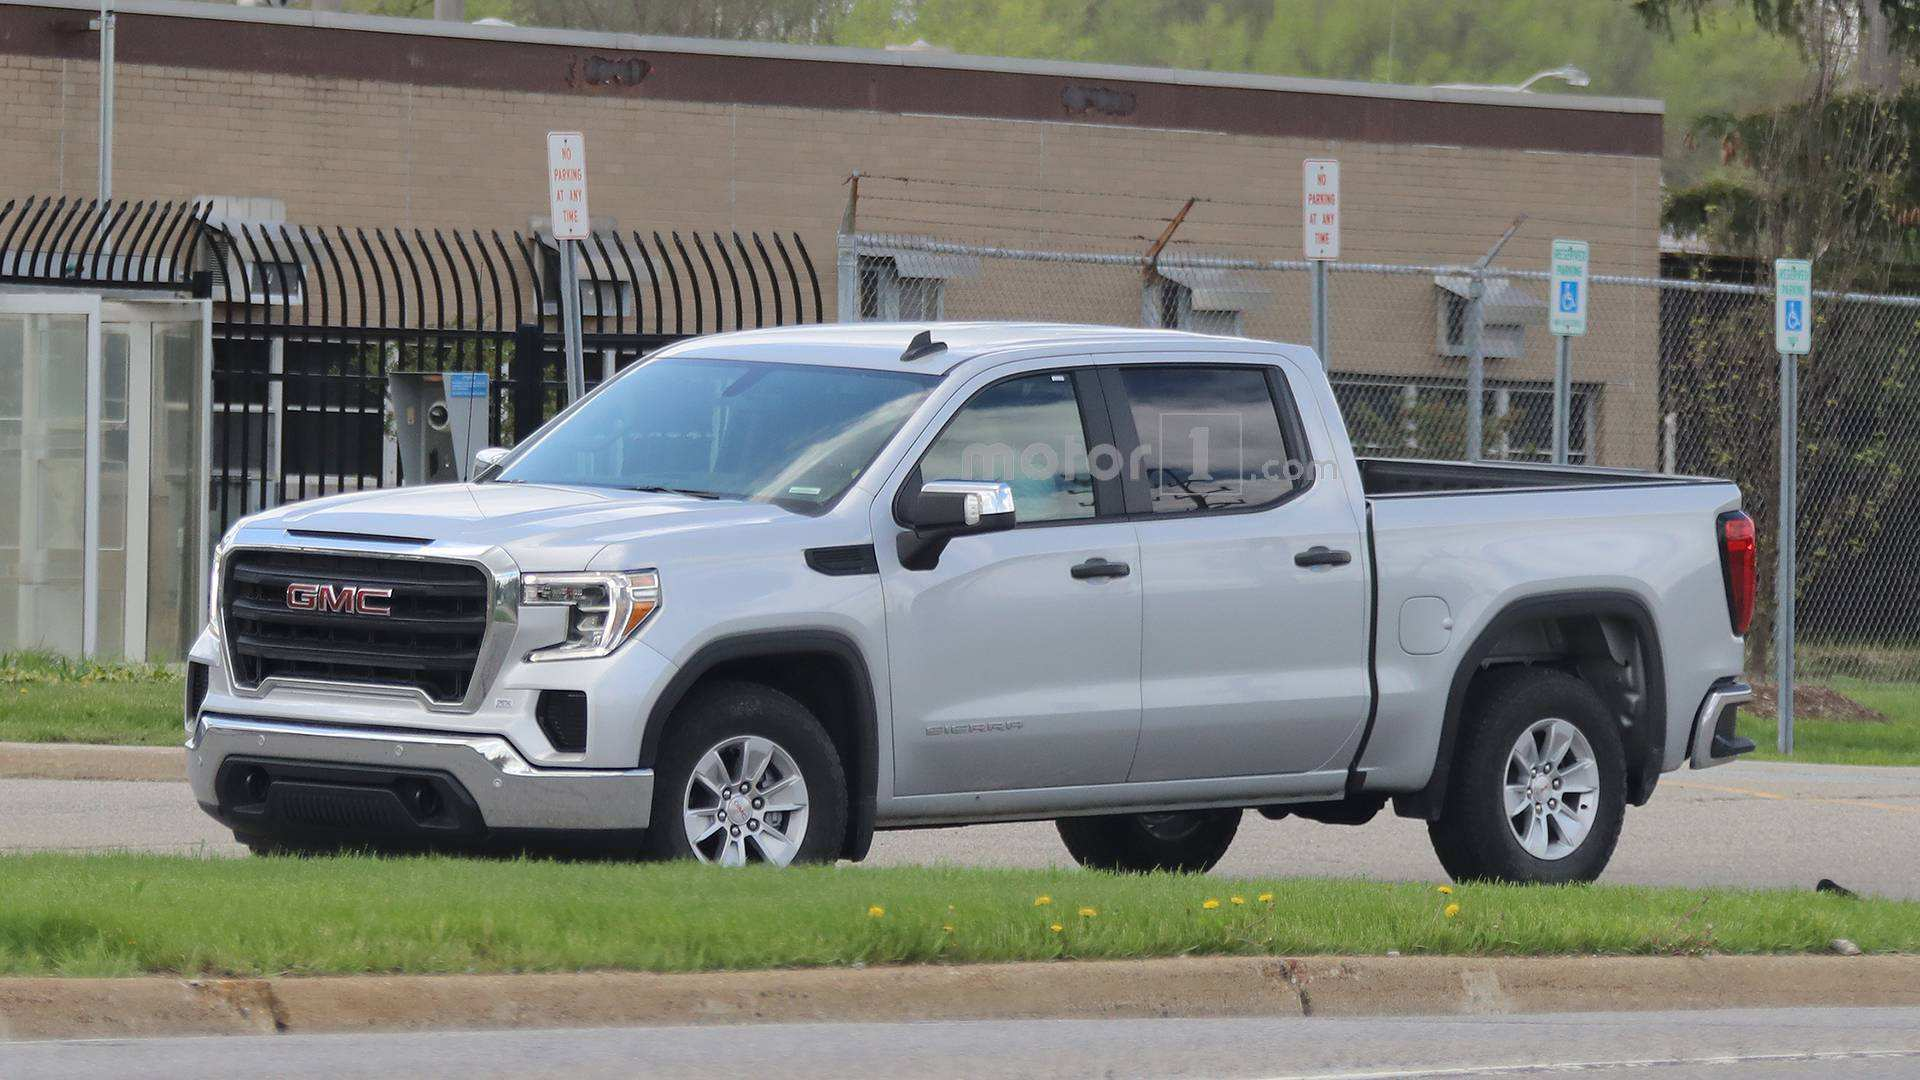 39 All New 2019 Gmc Sierra Rendering First Drive